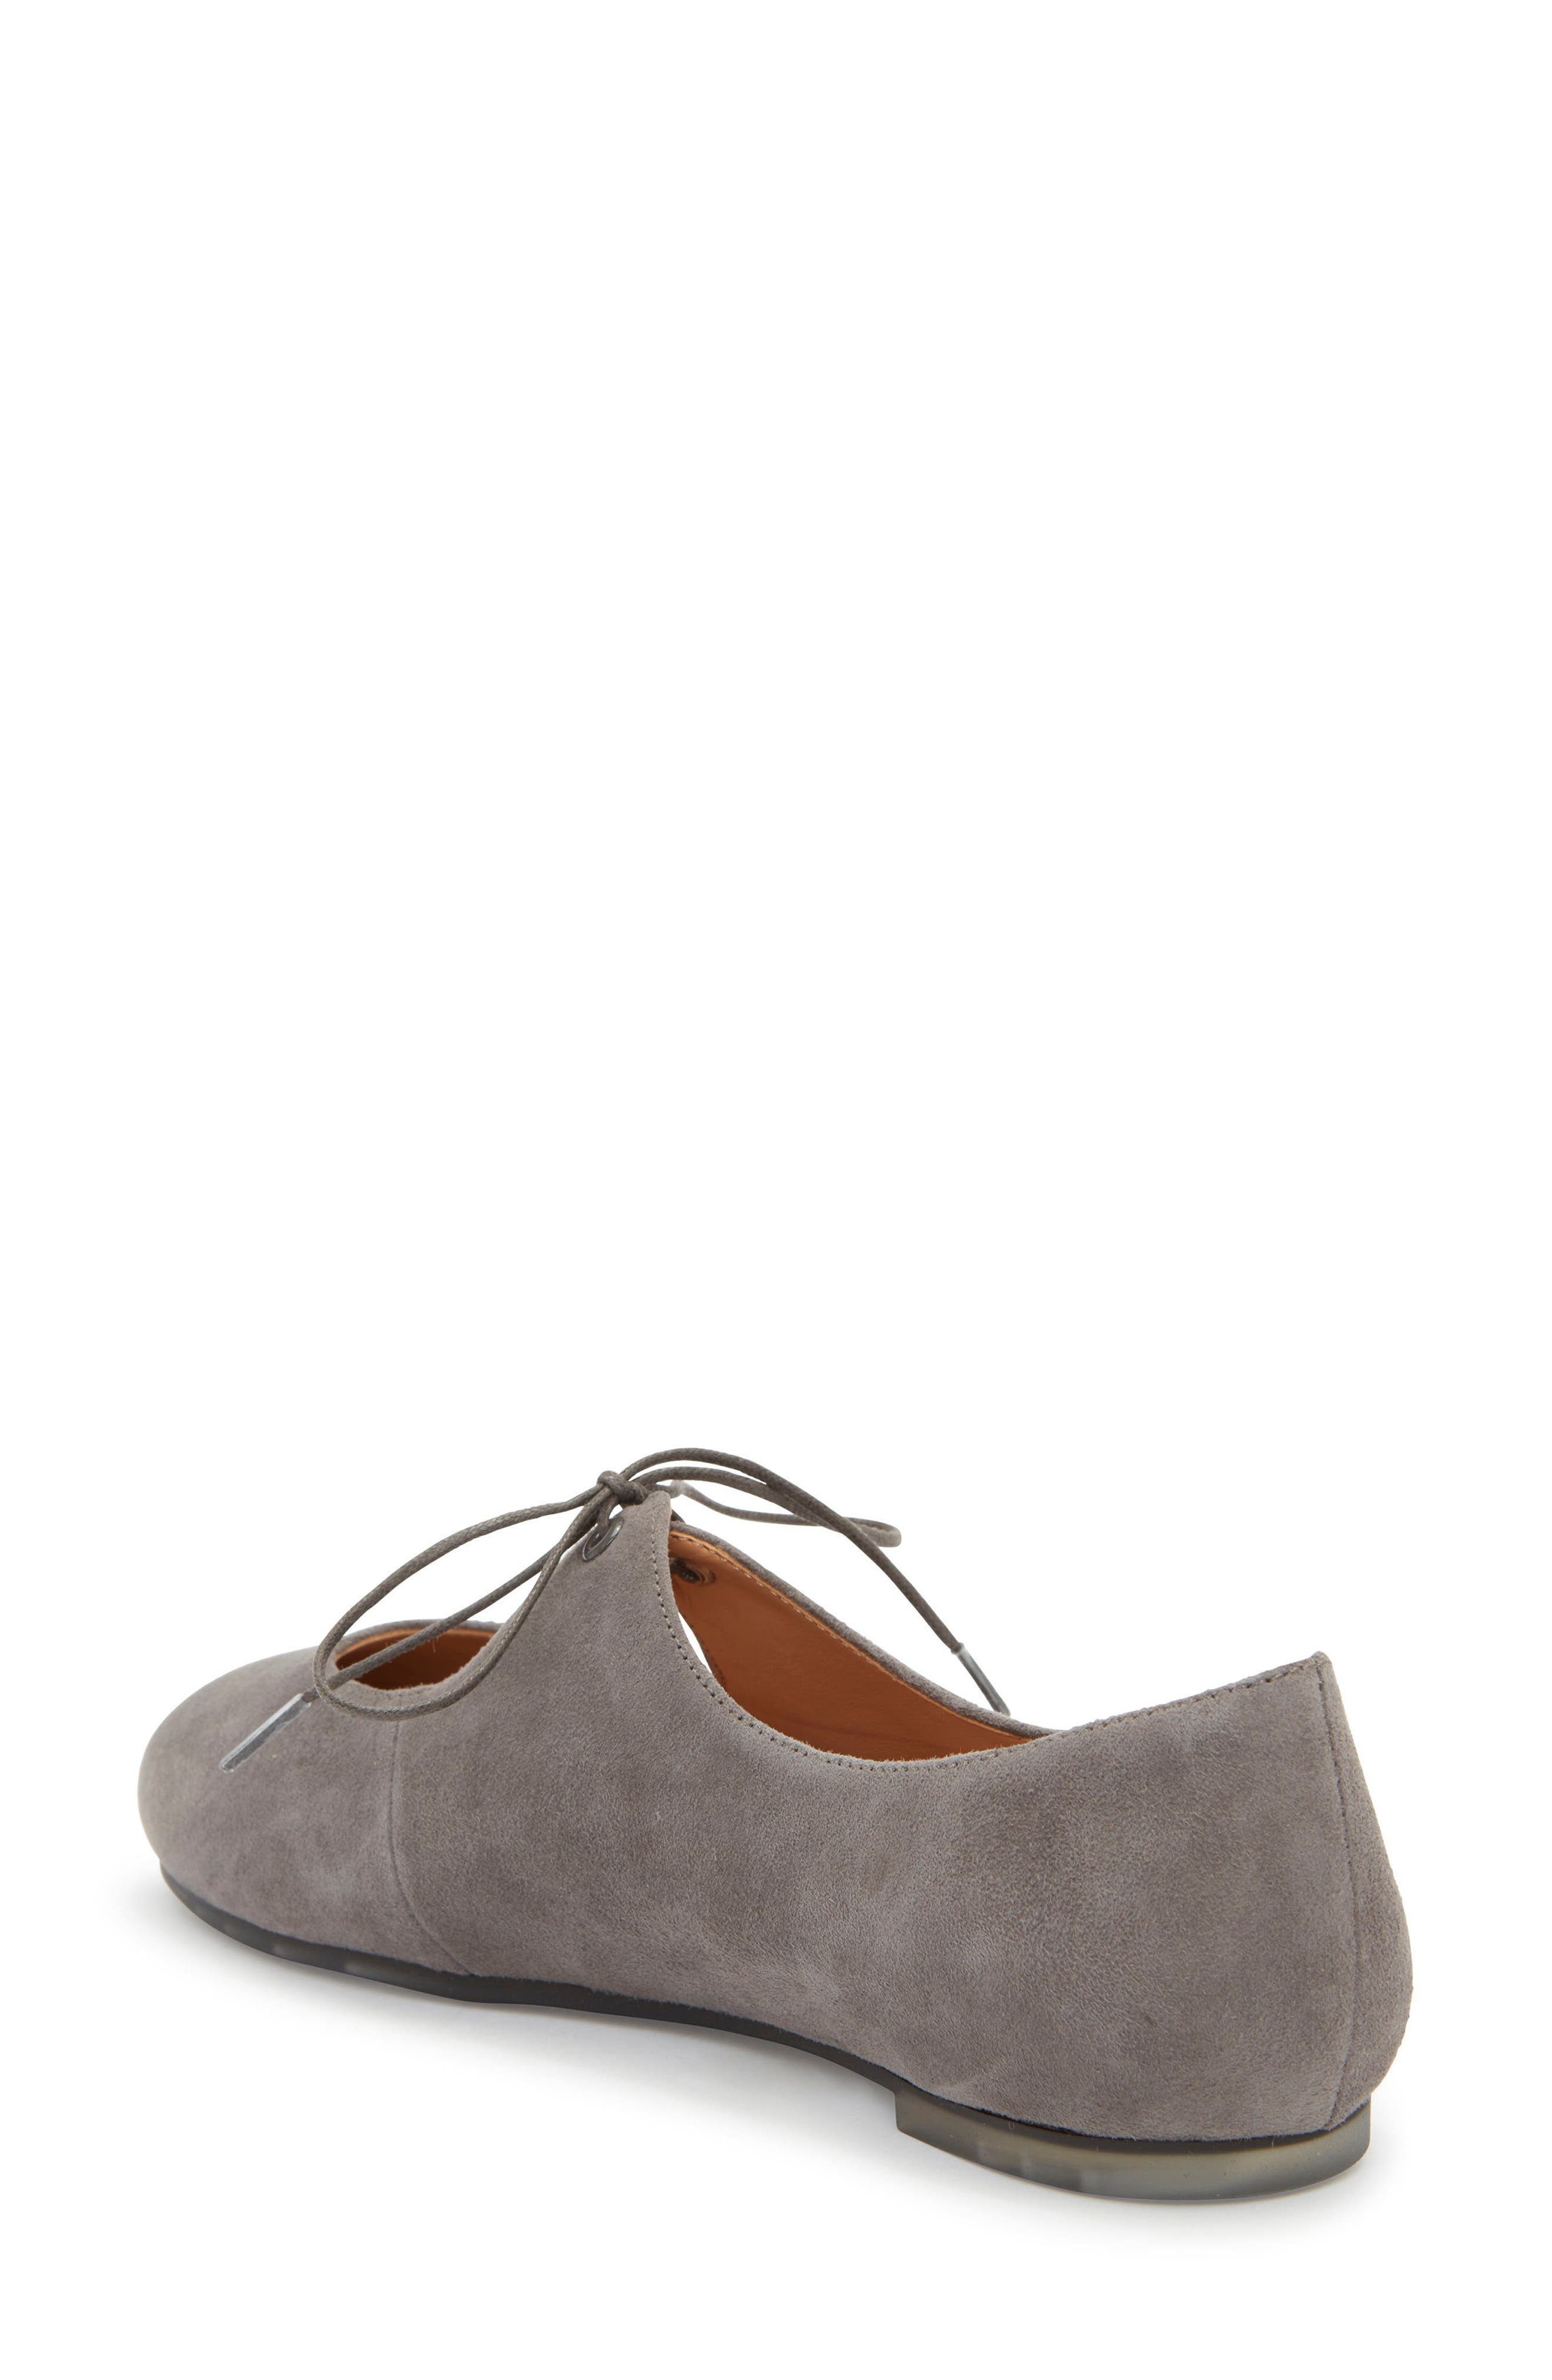 Cacey Mary Jane Flat,                             Alternate thumbnail 2, color,                             Charcoal Suede